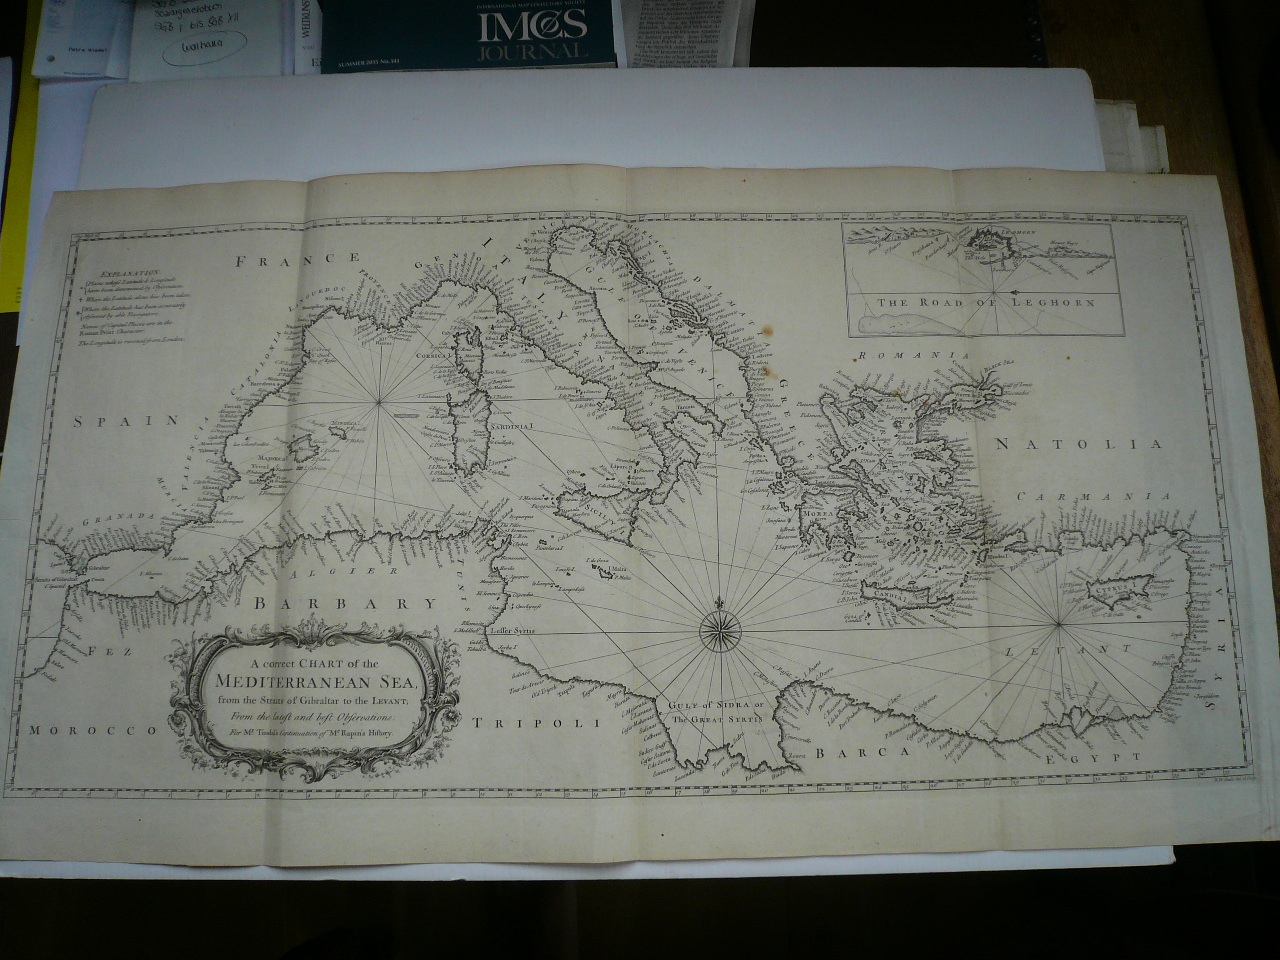 A correct CHART of the MEDITERRANEAN SEA, from the Straits of Gi